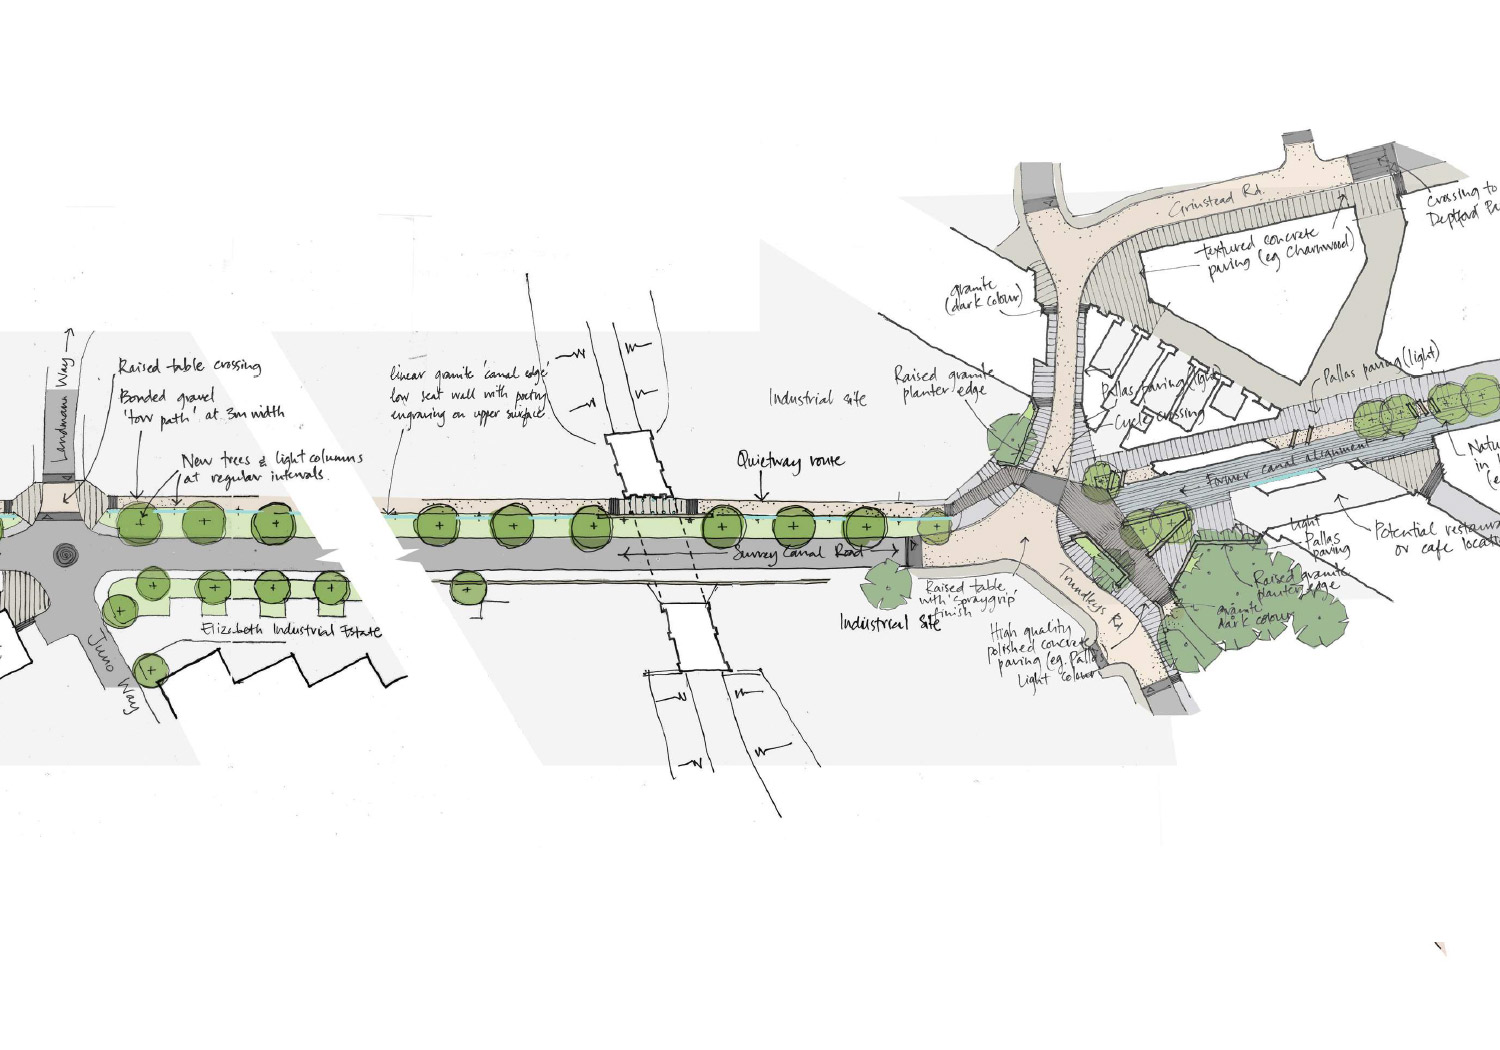 Projects-TransInfra-Quietway-SketchPlan2-1050x700